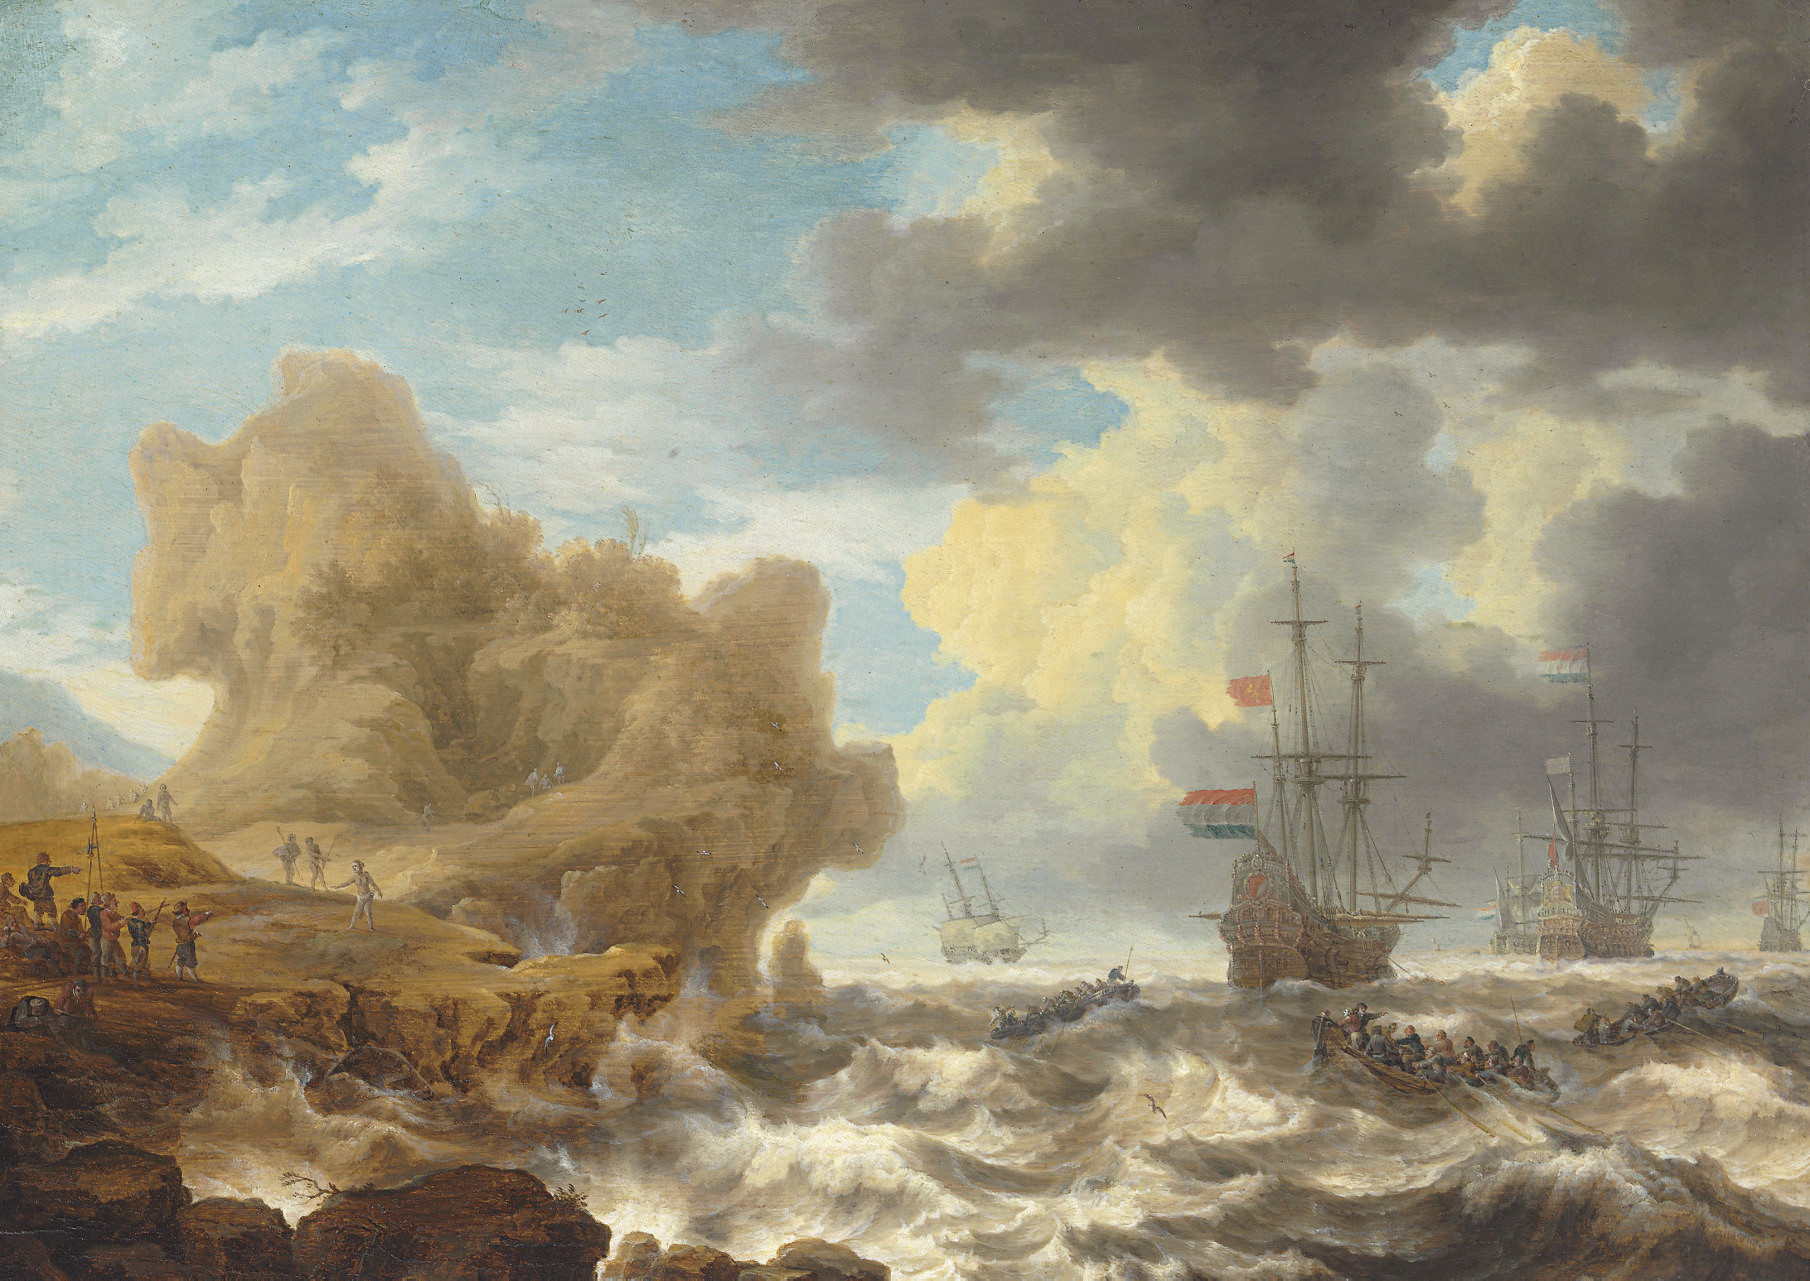 Dutch ships off a rocky coast with colonists encountering natives